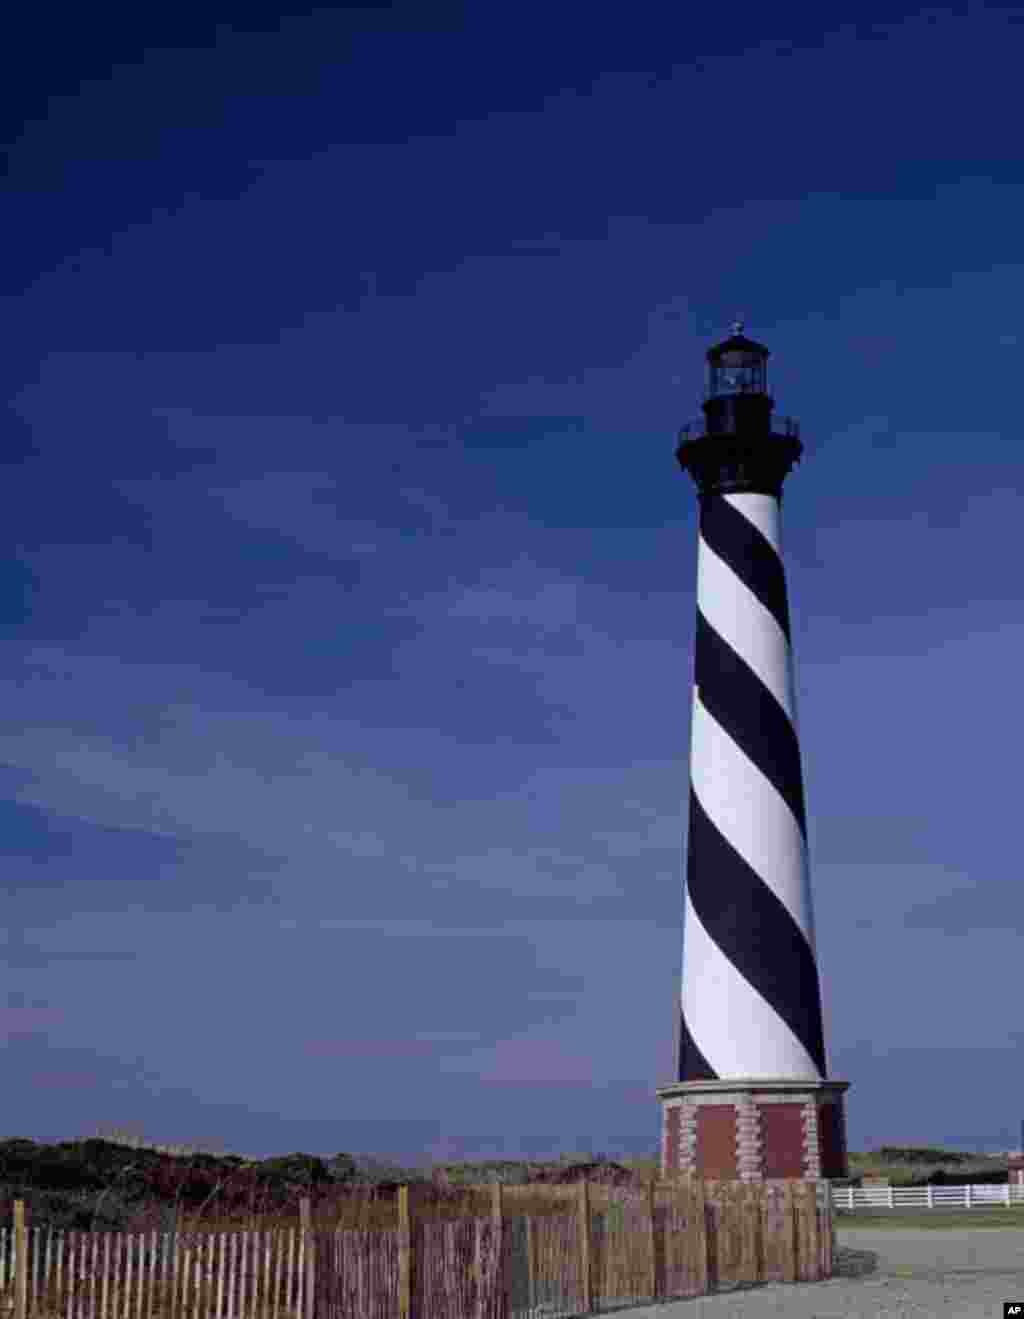 This lighthouse on Cape Hatteras in North Carolina is one of America's most-photographed.